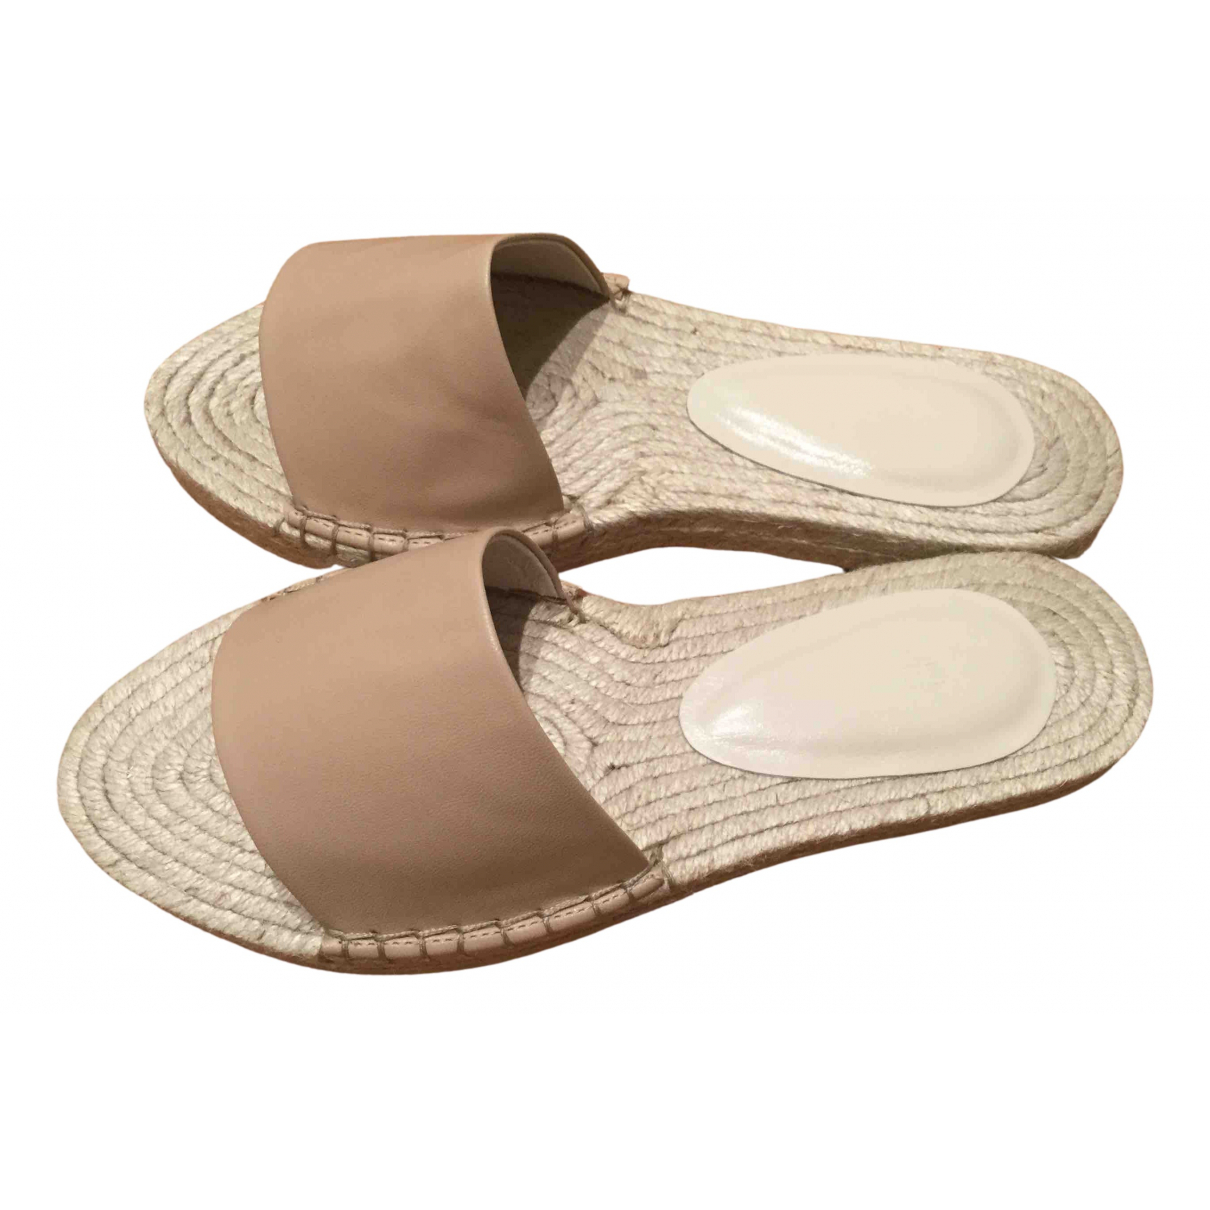 House Of Harlow \N Beige Leather Espadrilles for Women 37 EU